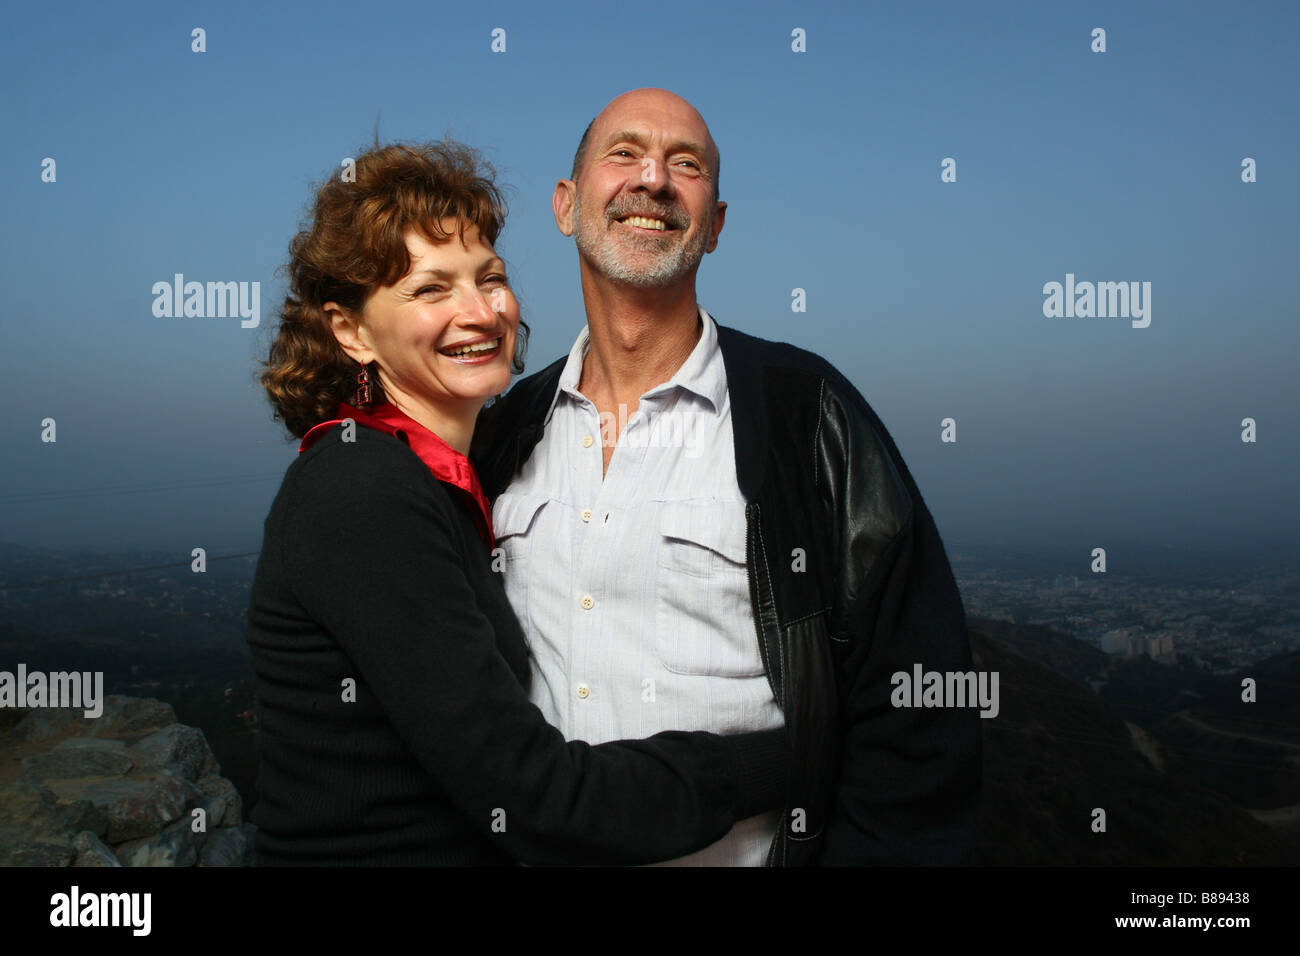 Happy mature couple embracing outdoors ontop of a city Stock Photo